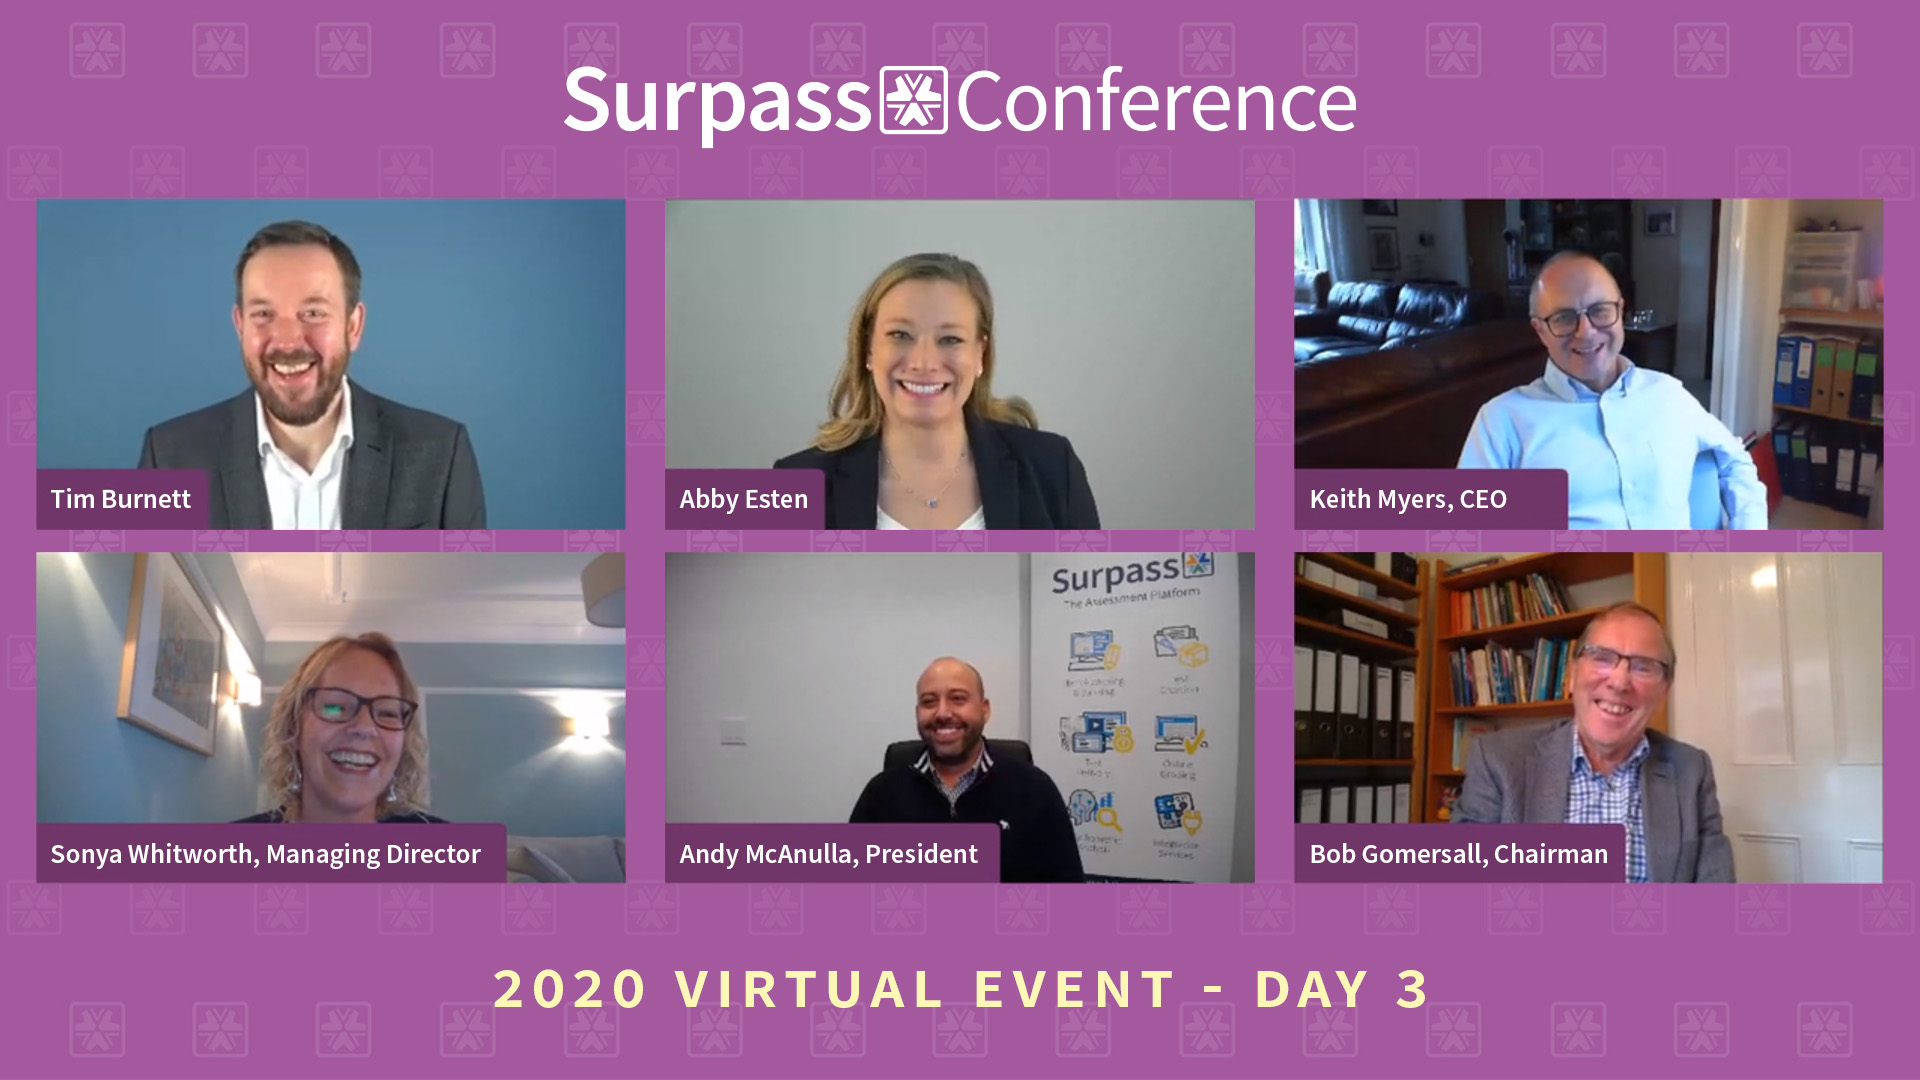 Surpass Conference 2020 Virtual Event - Day 3